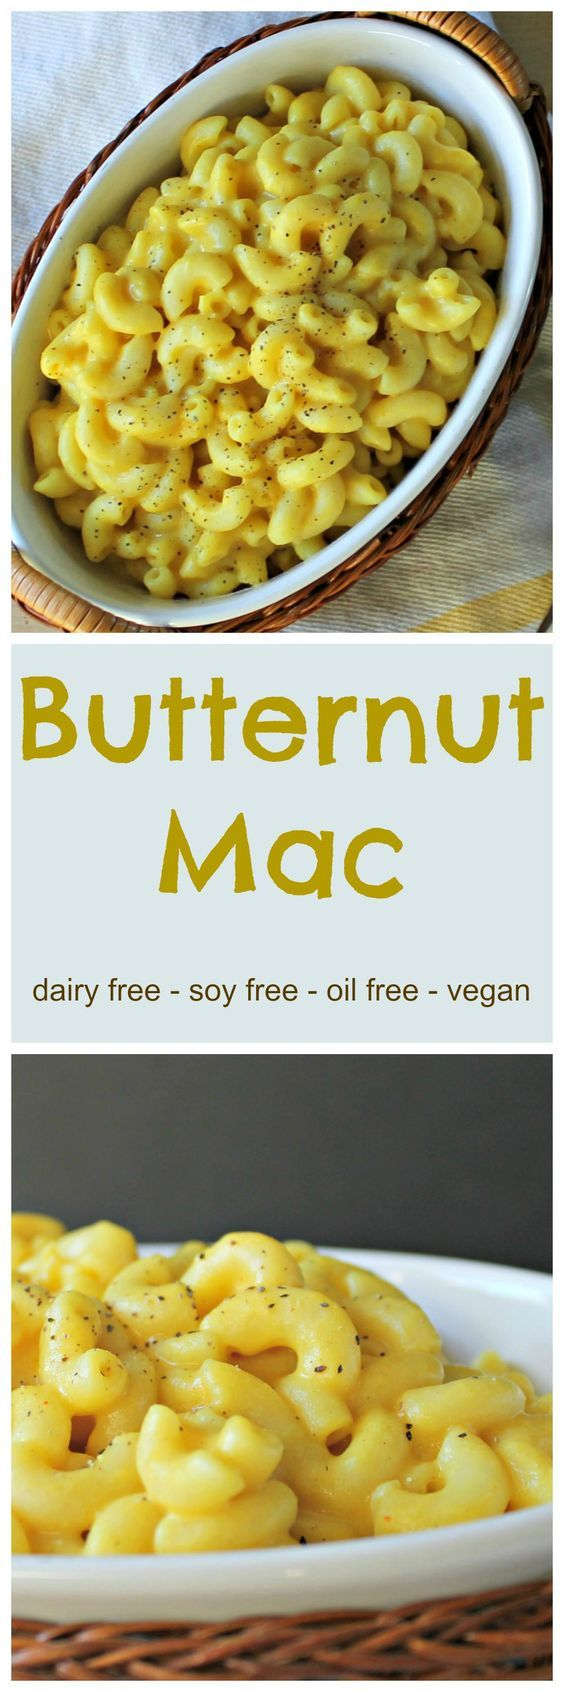 Butternut Mac - This recipe is dairy free and made with all whole food ingredients. No soy, no nutritional yeast, and no fake cheese! #plantstrong #plantbased